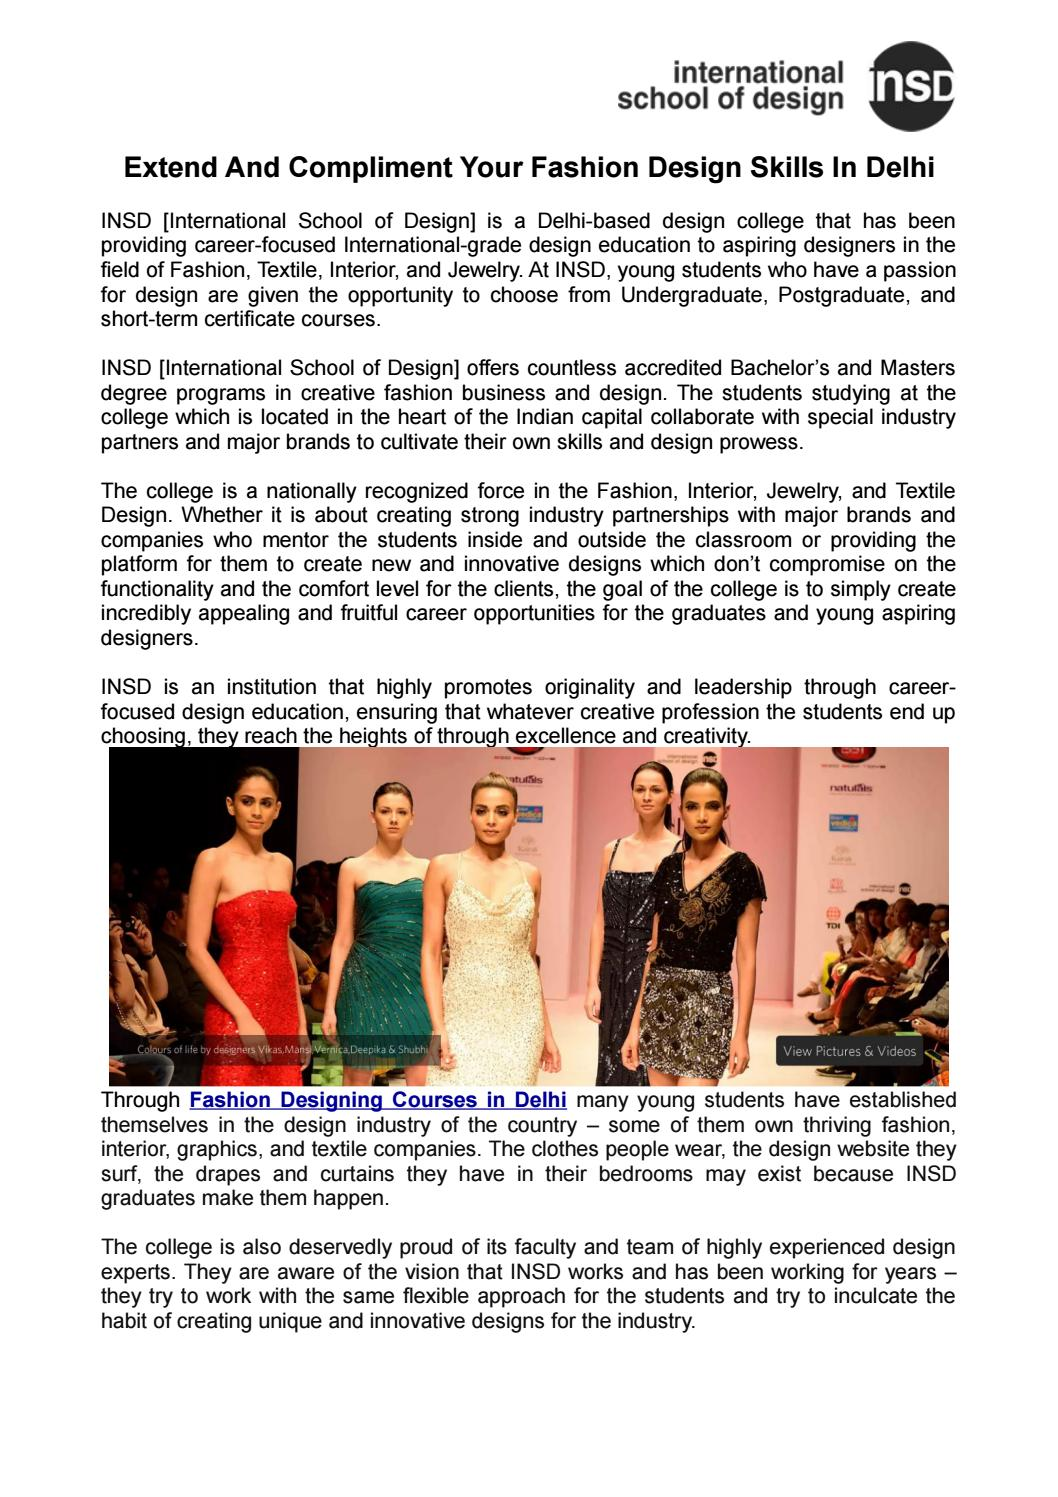 Extend And Compliment Your Fashion Design Skills In Delhi By Insd Paschim Vihar Issuu